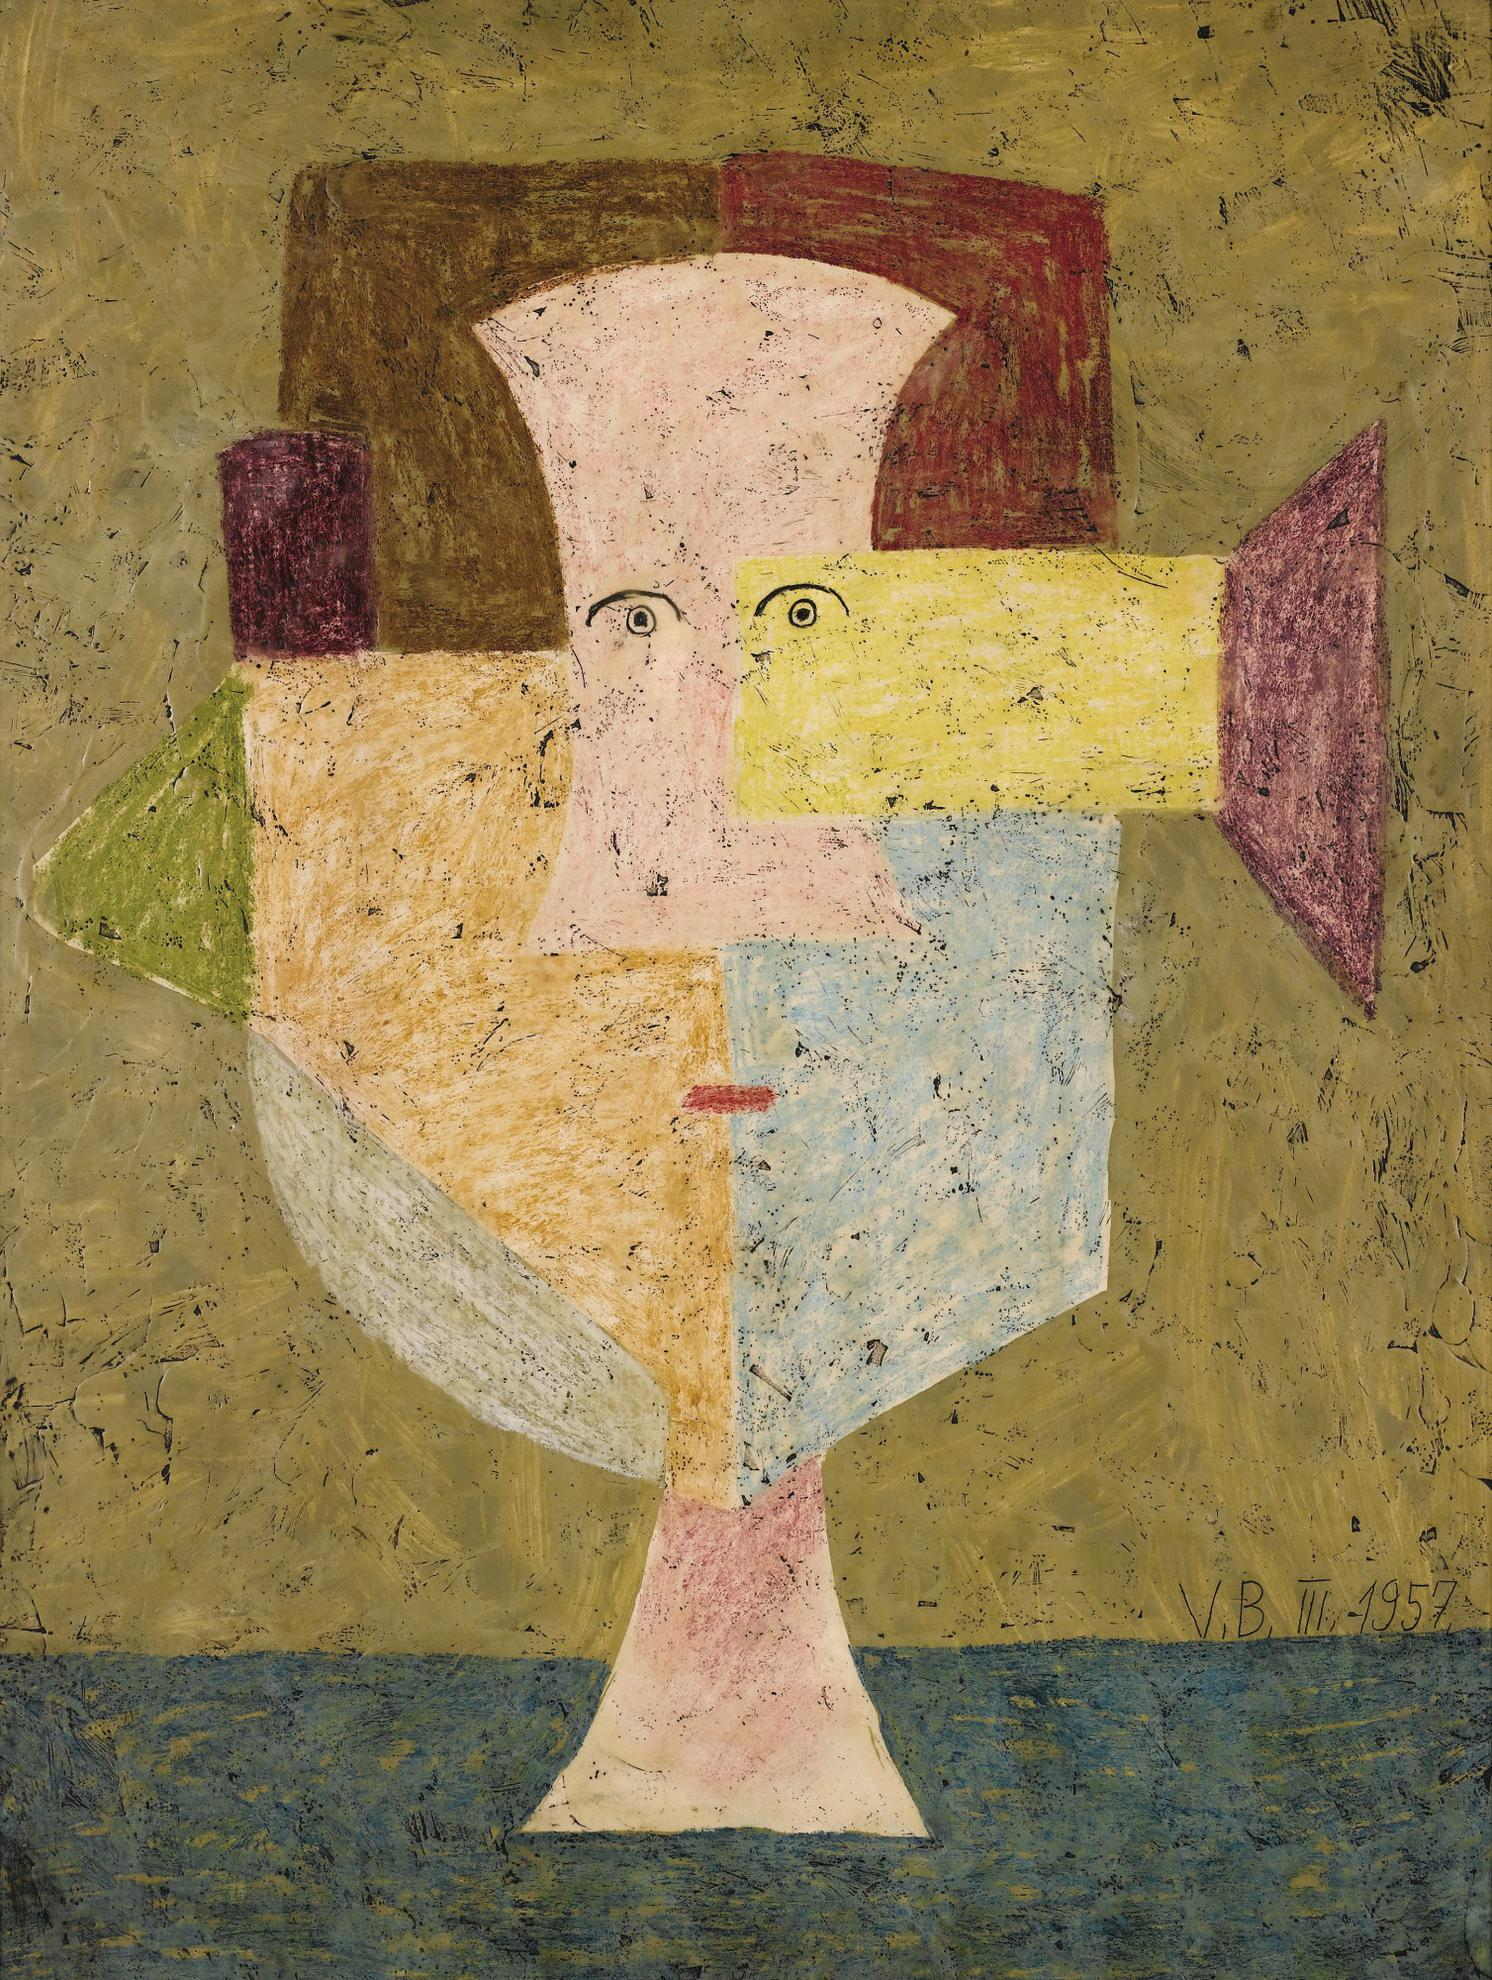 Victor Brauner-Le Pyreneen-1957